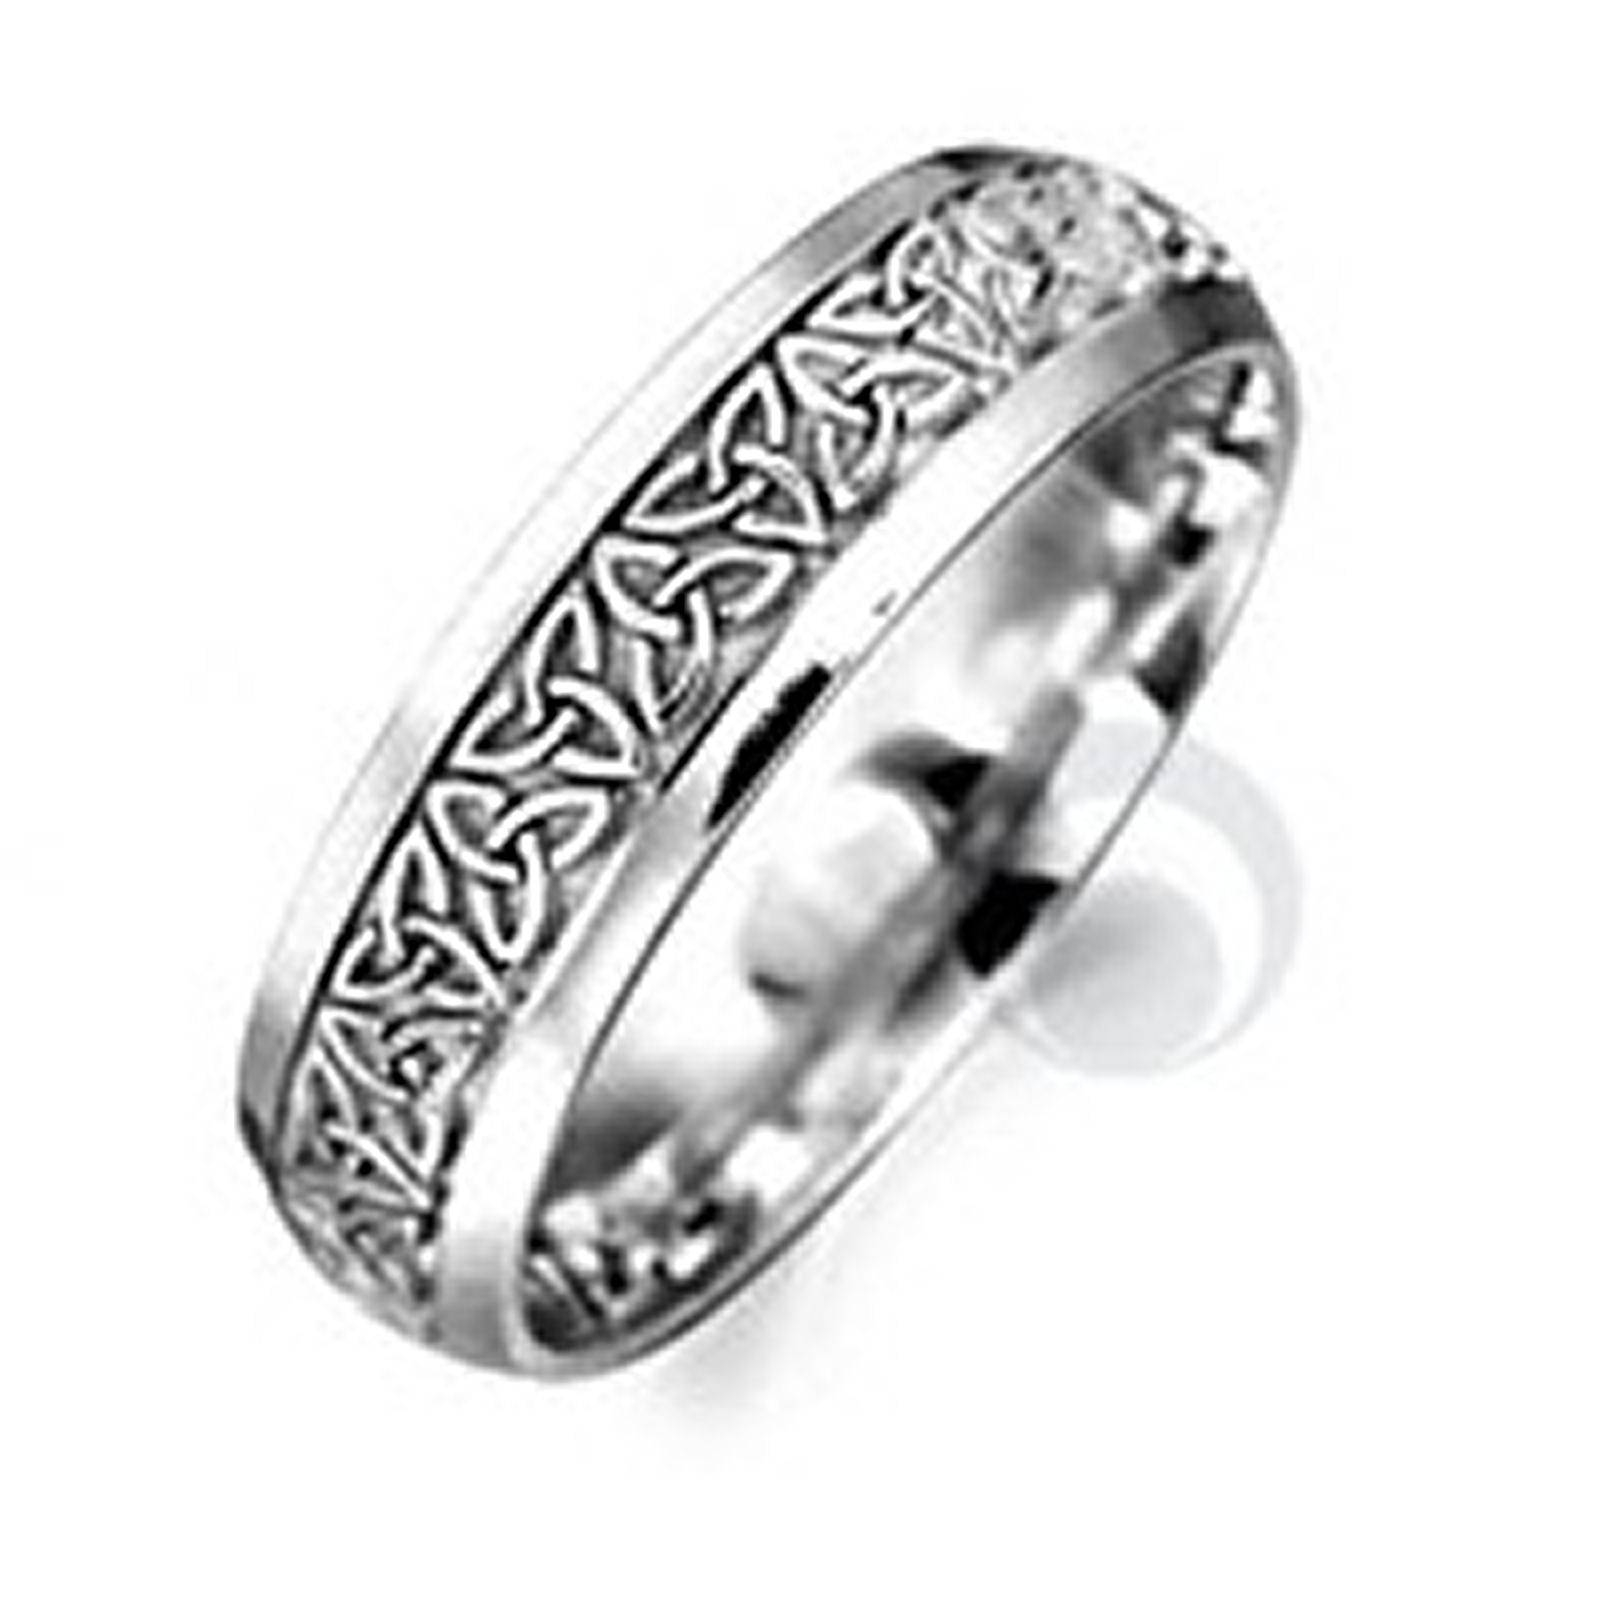 of my original celtic engagement ring s la inspirational soulmate mate new soul mo rings wedding anam gaelic cara